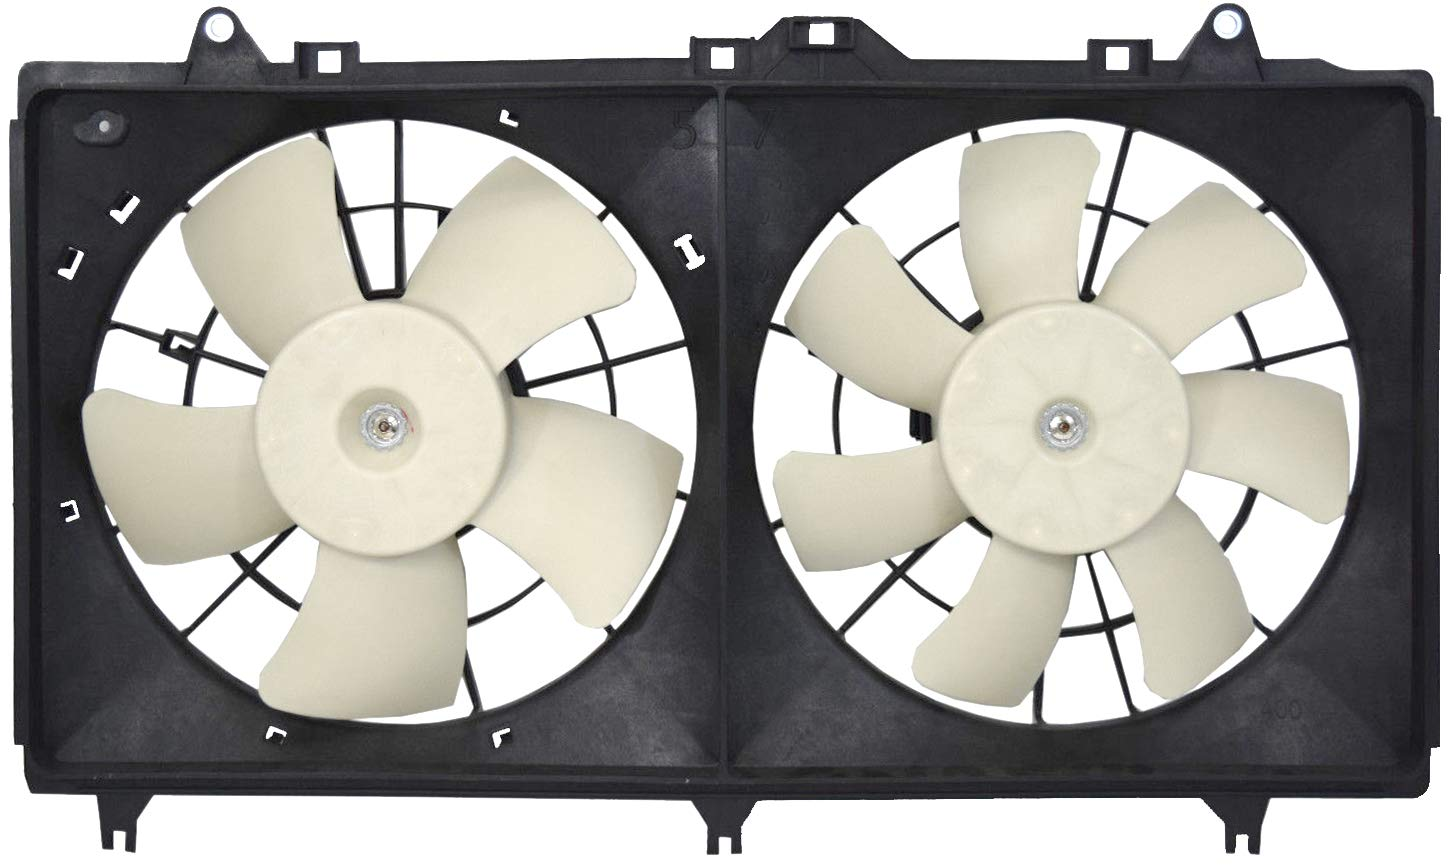 RADIATOR CONDENSER COOLING FAN FOR CHEVY FITS CAMARO 6.2 V8 8CYL GM3115245